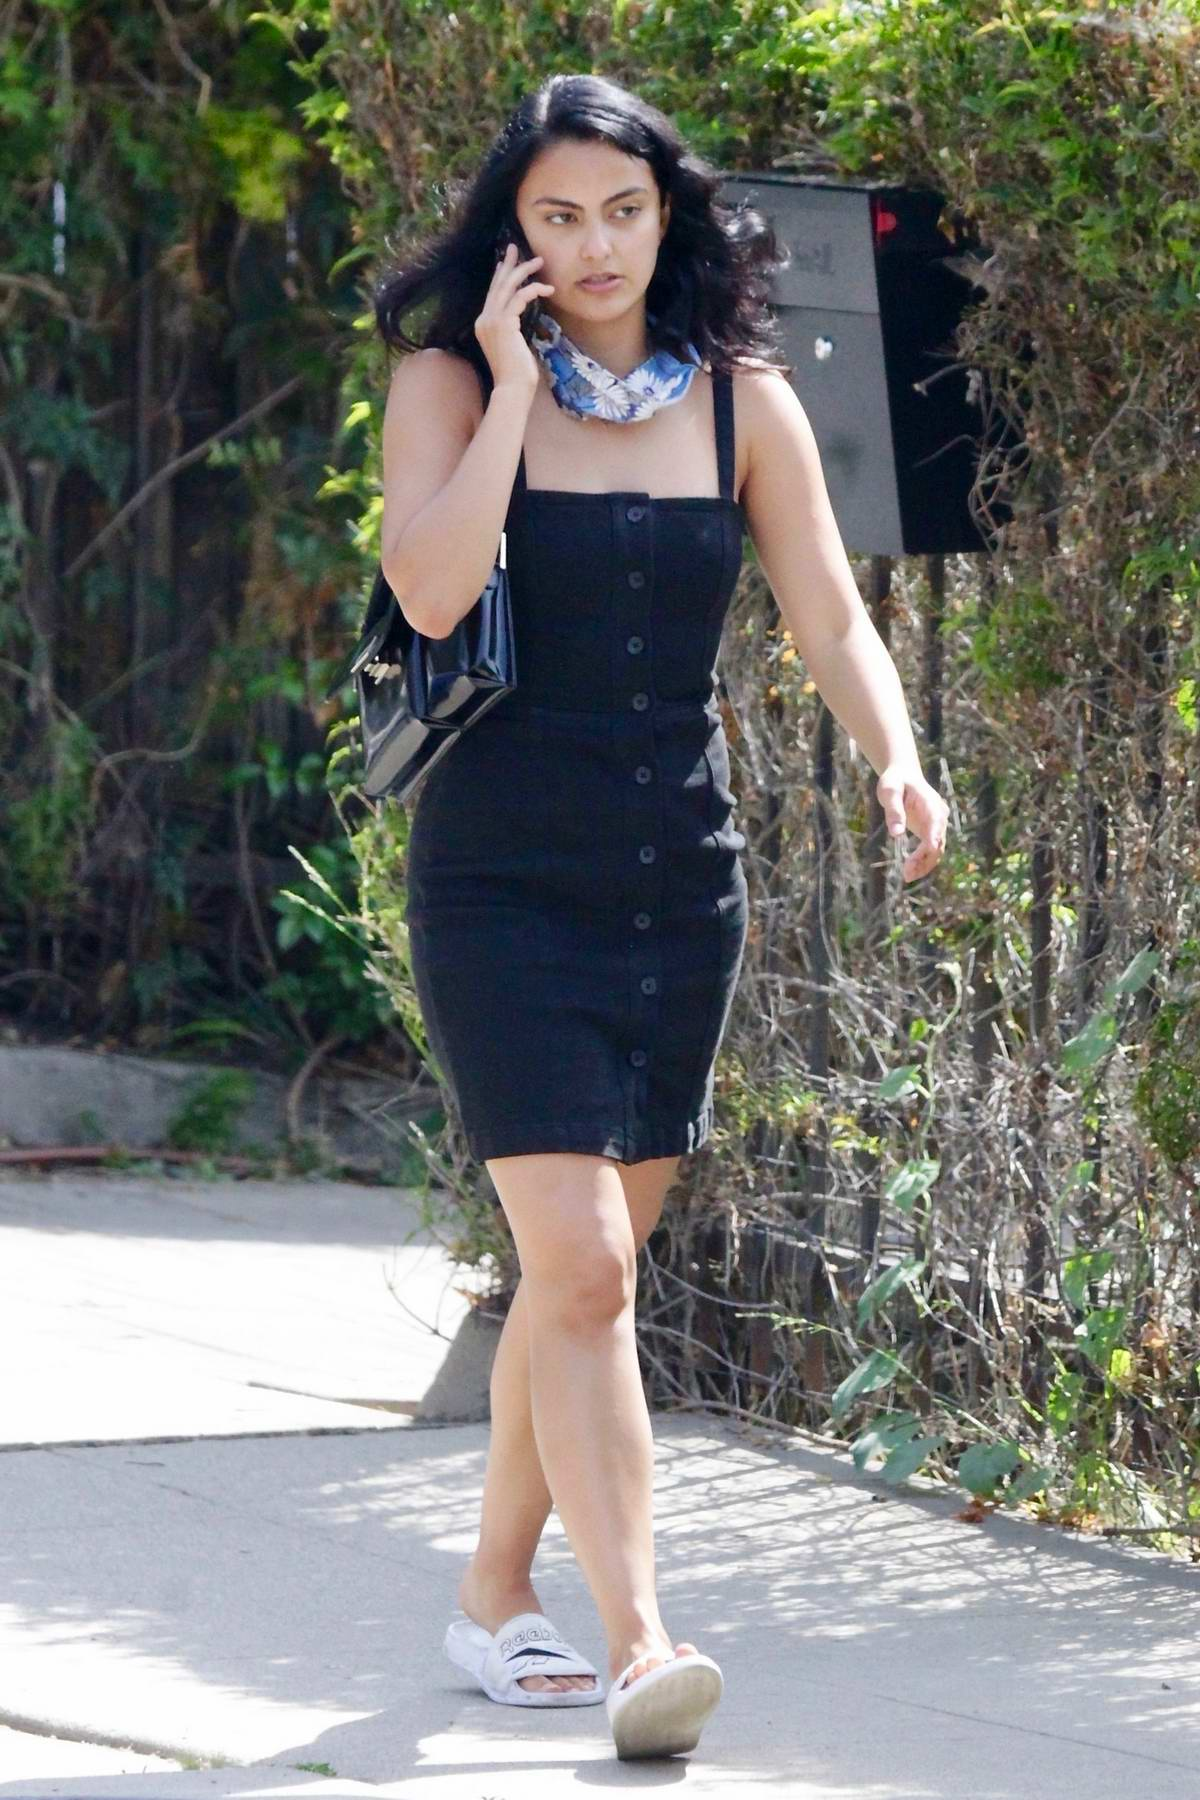 Camila Mendes looks great in a button-down denim dress while out for a coffee run in Los Angeles